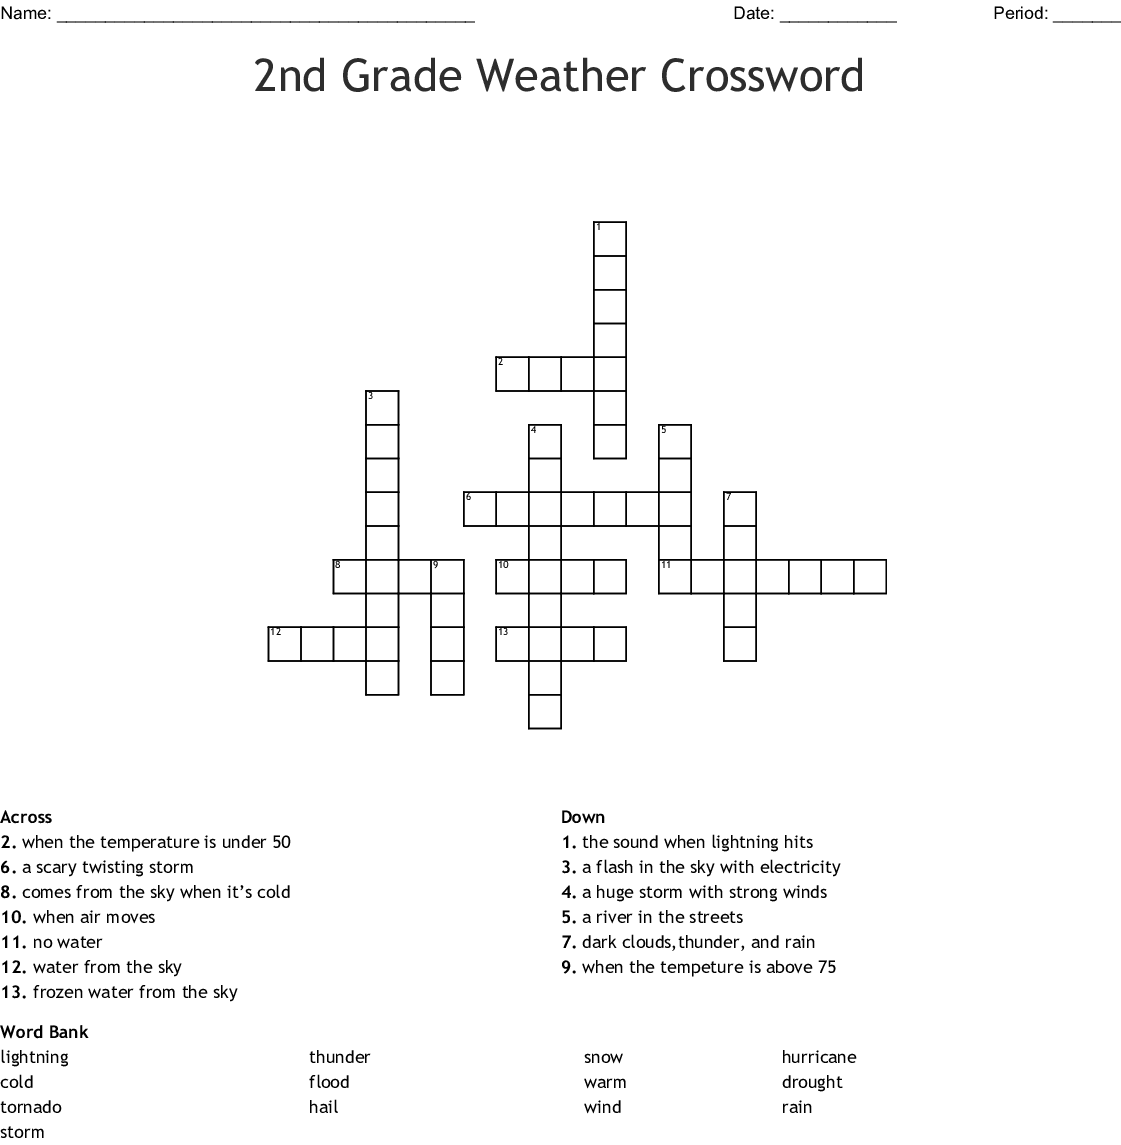 2nd Grade Weather Crossword